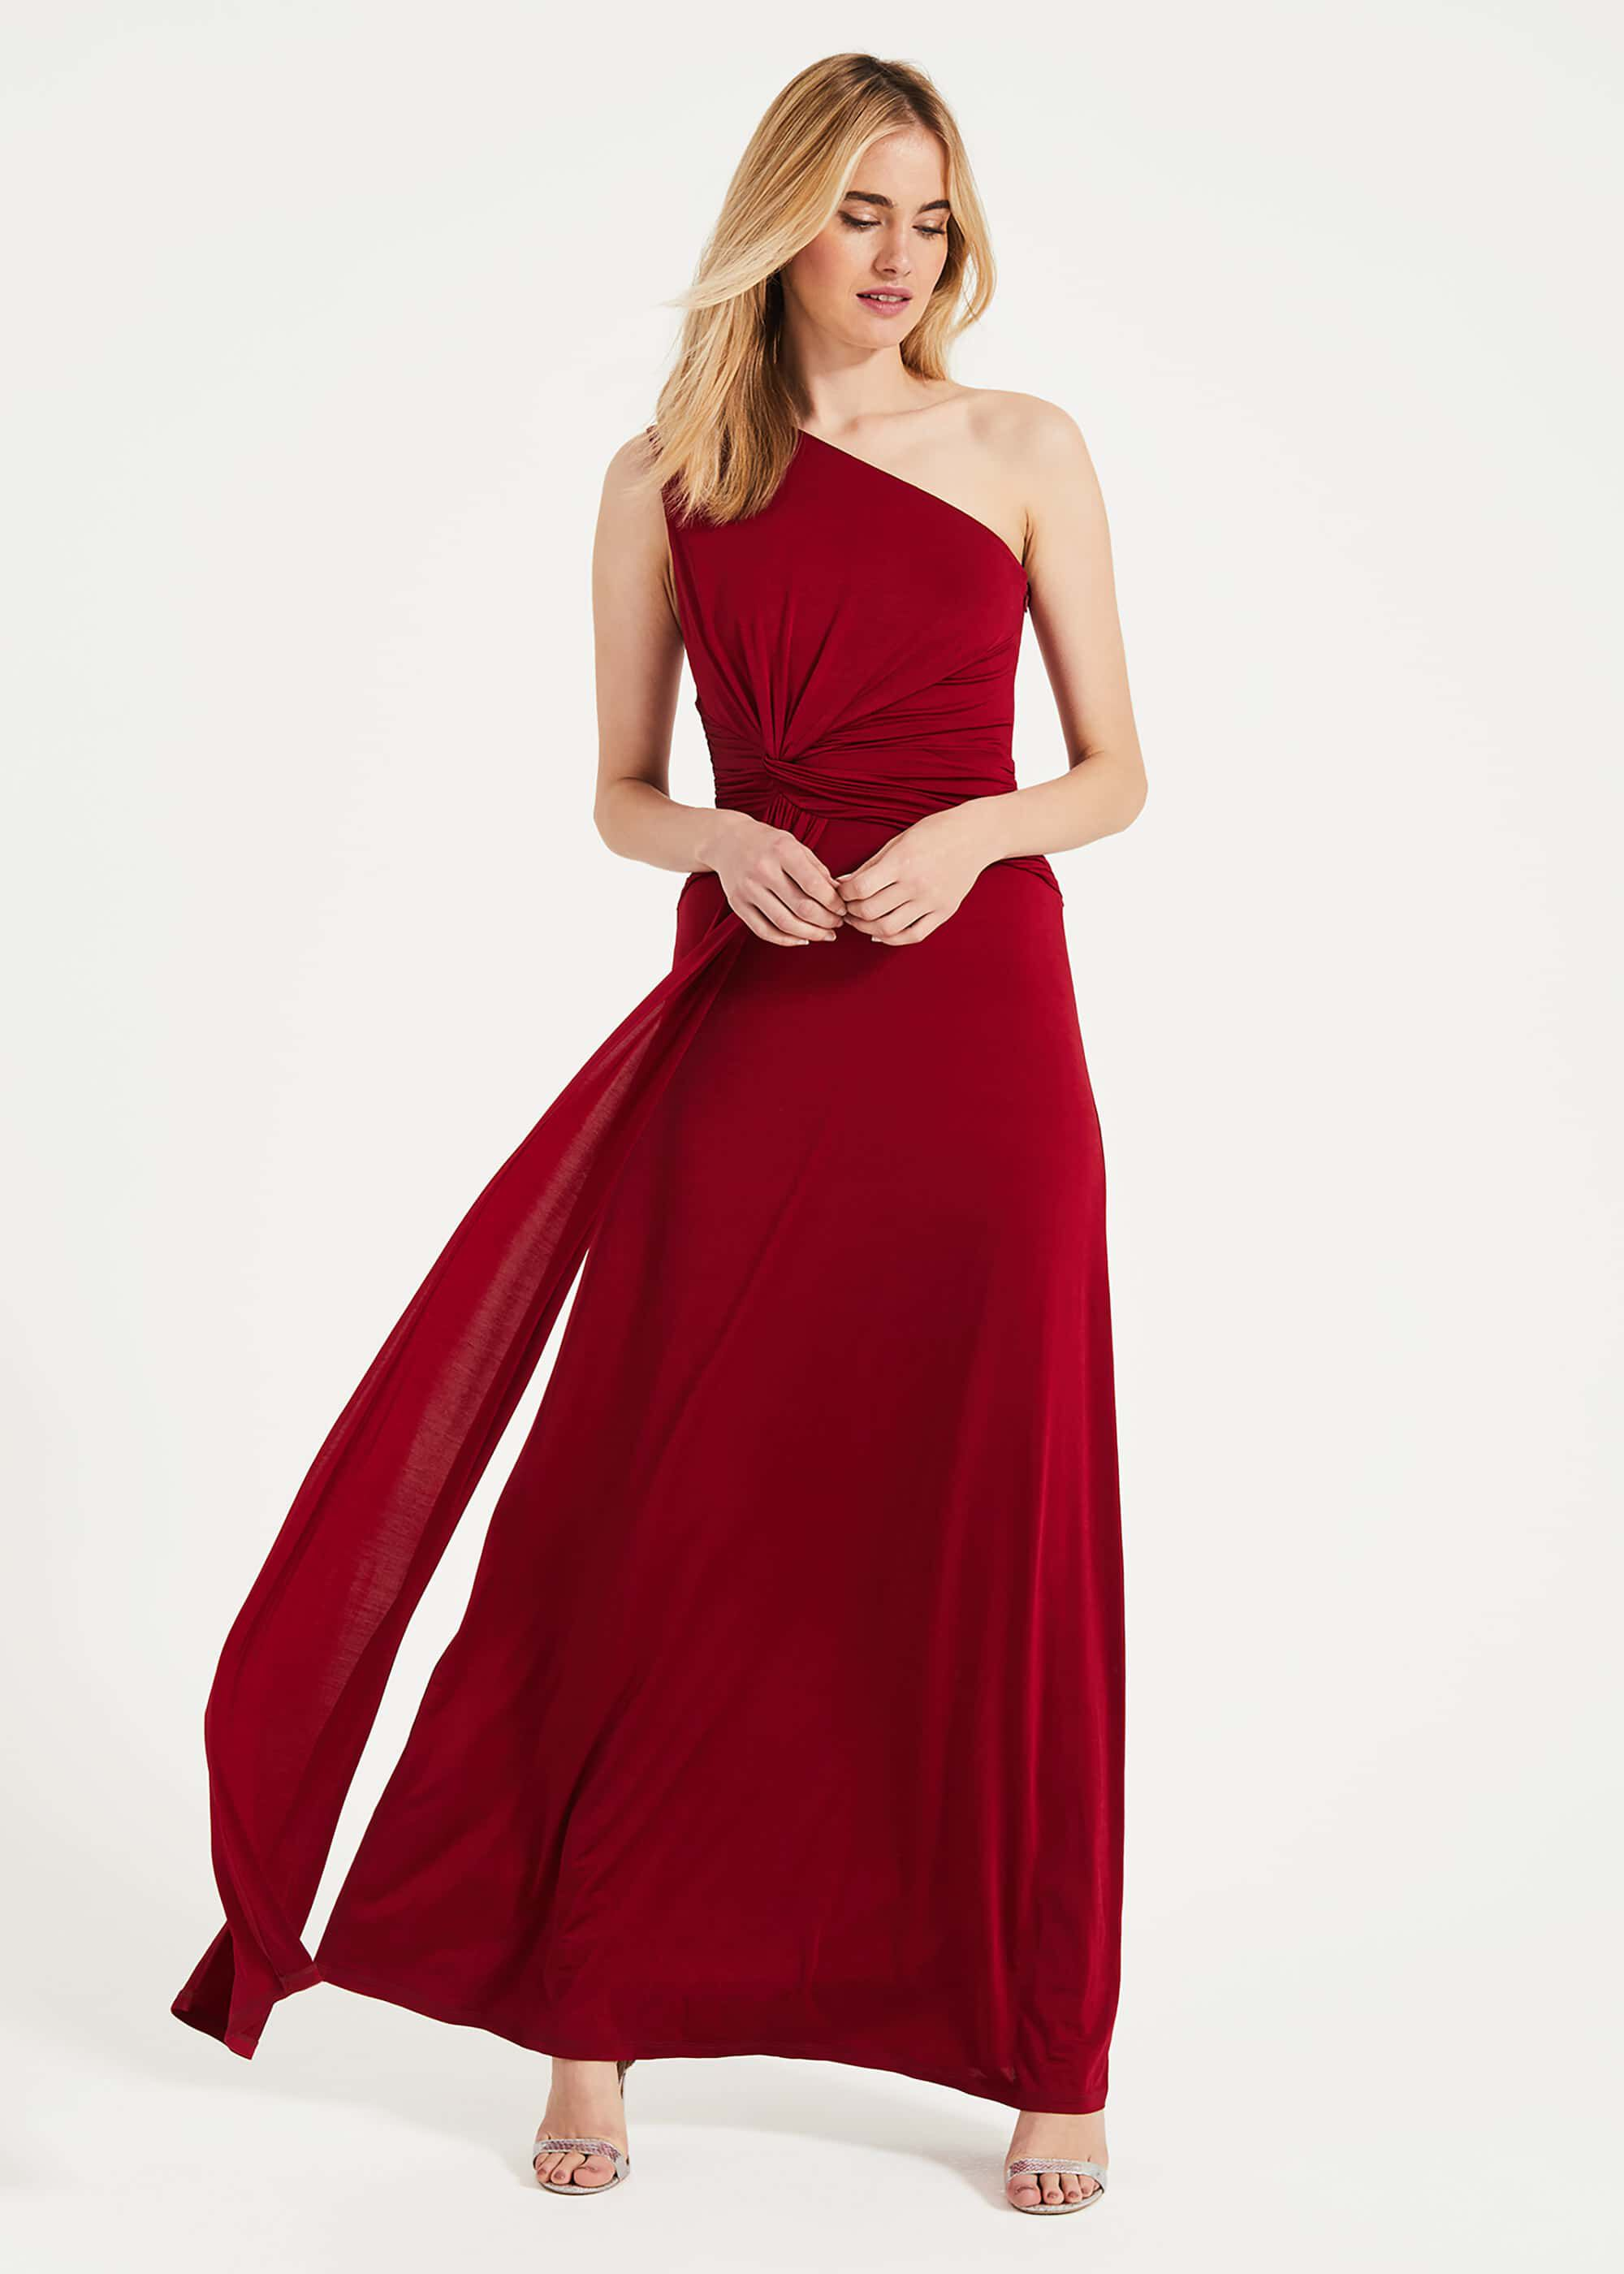 Phase Eight Jojo One Shoulder Dress, Red, Maxi, Occasion Dress